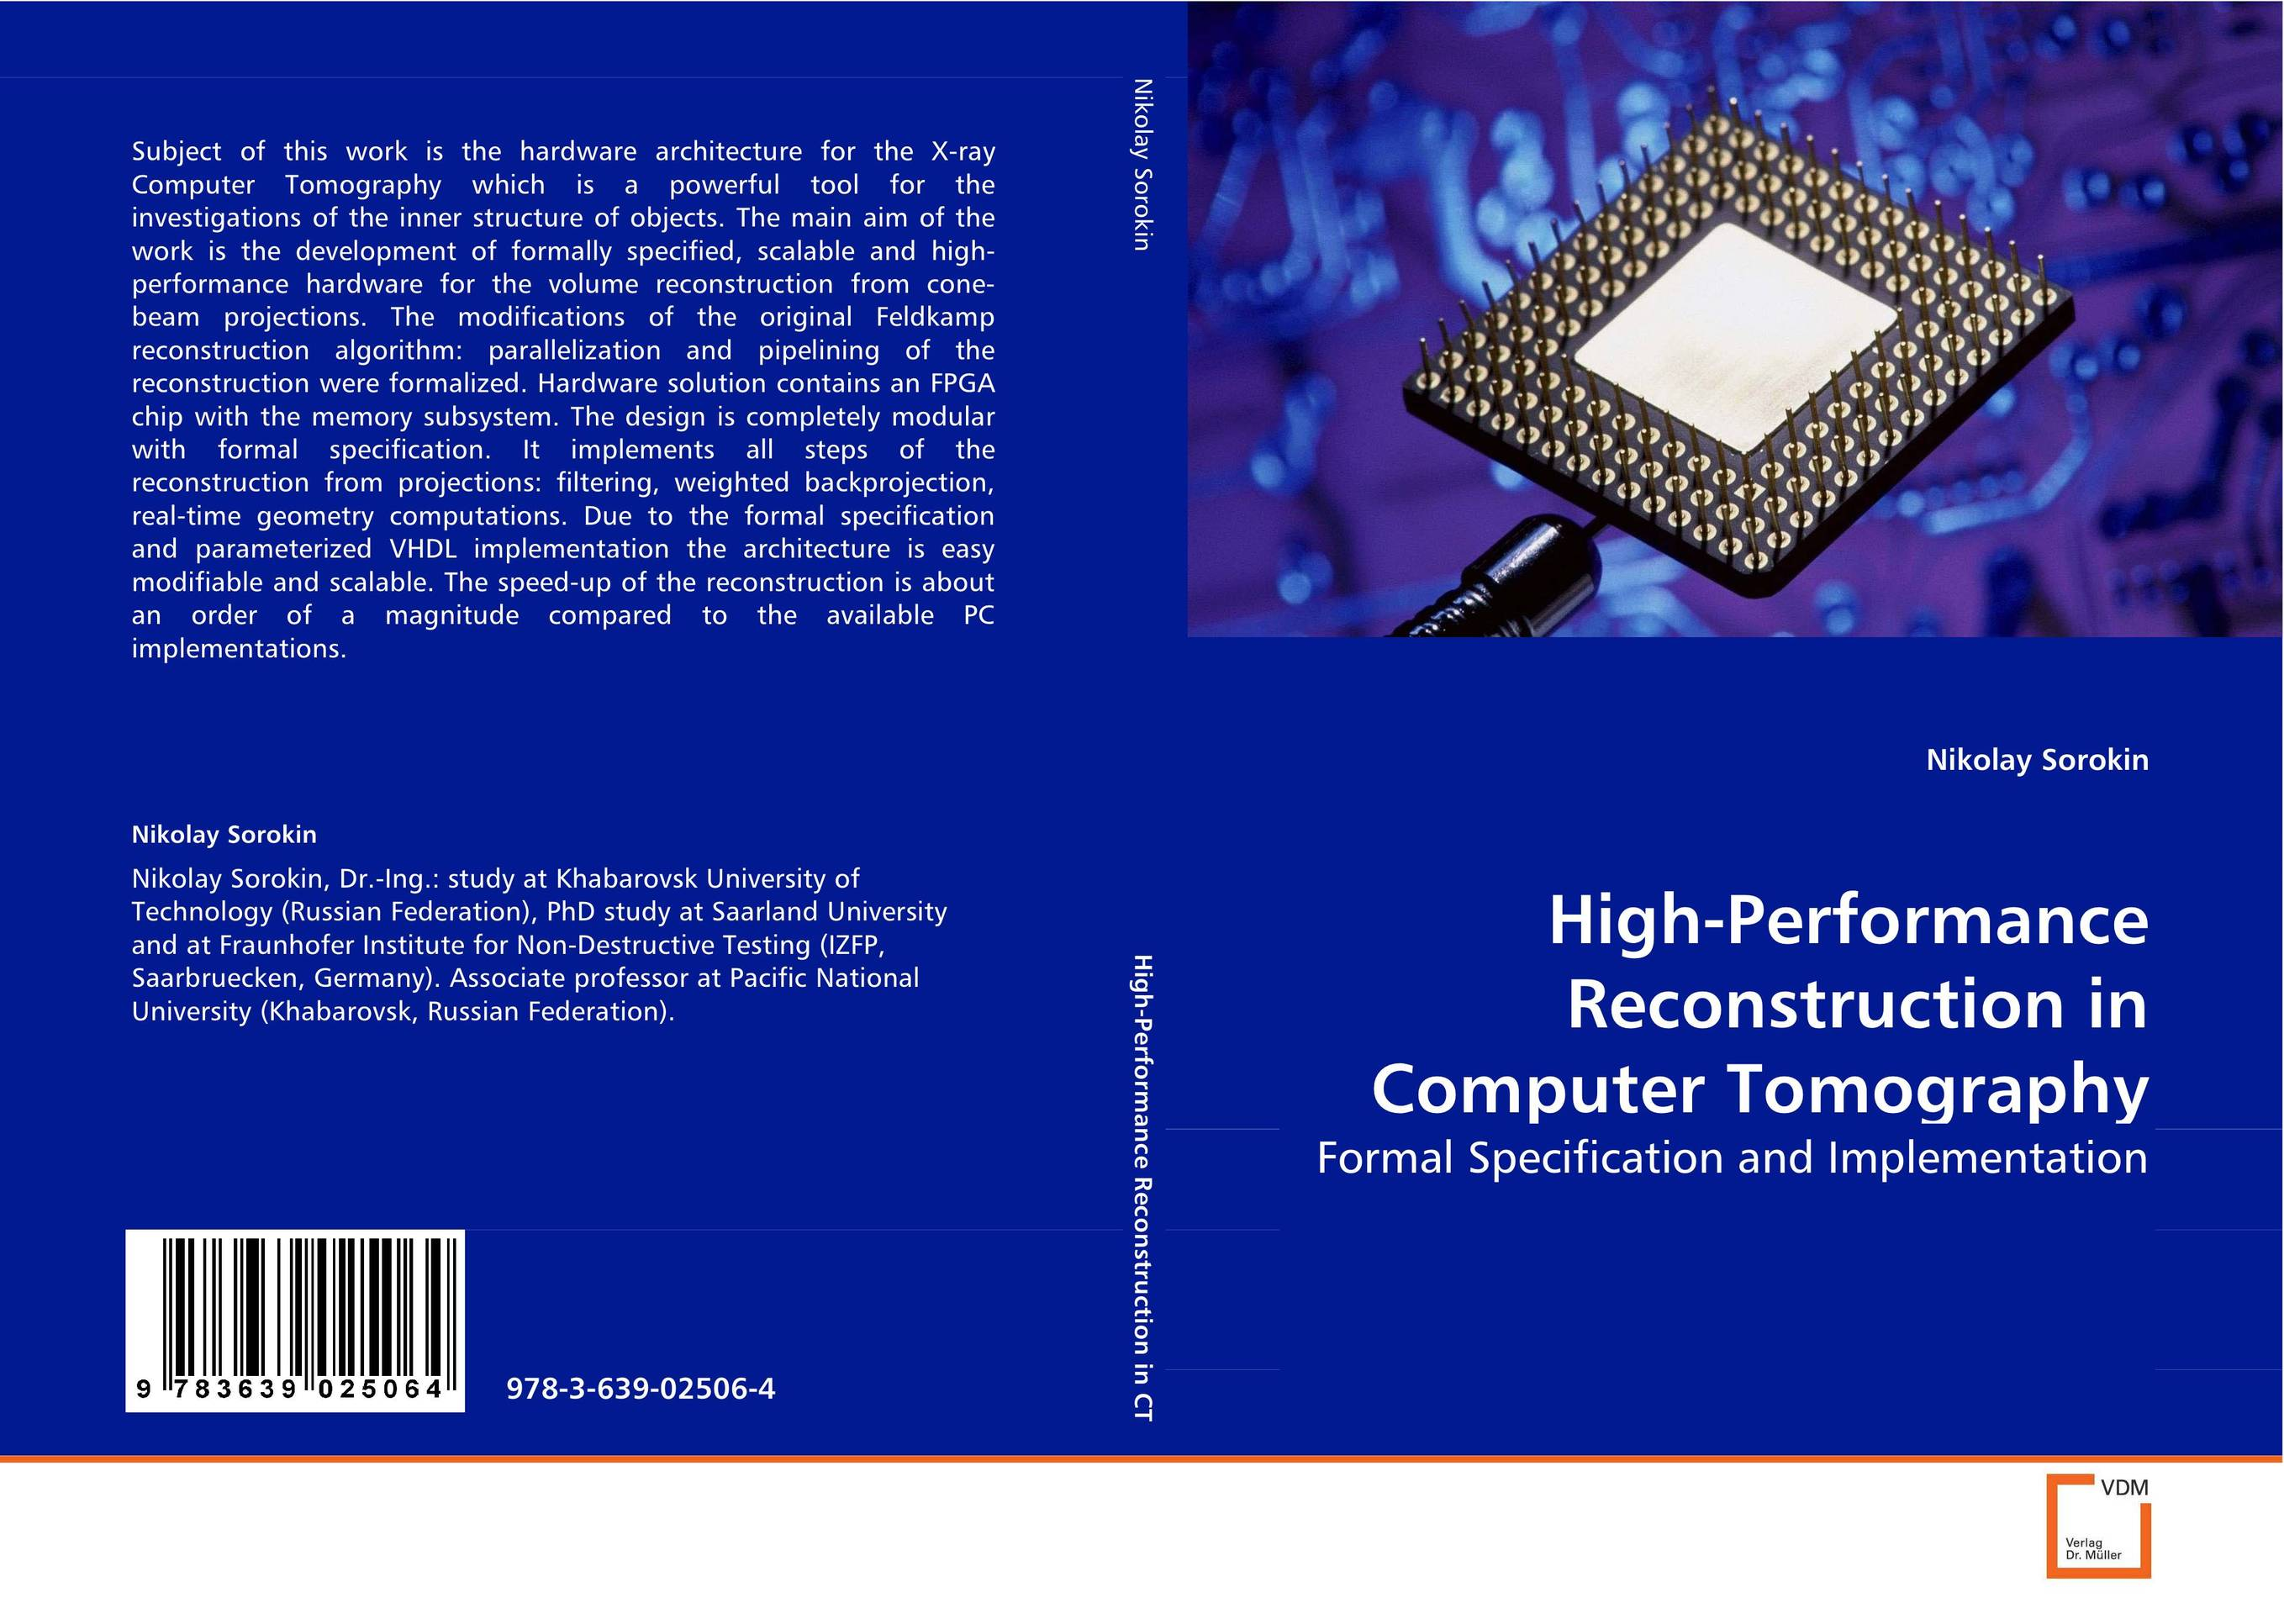 High-Performance Reconstruction in Computer Tomography david rose s the startup checklist 25 steps to a scalable high growth business